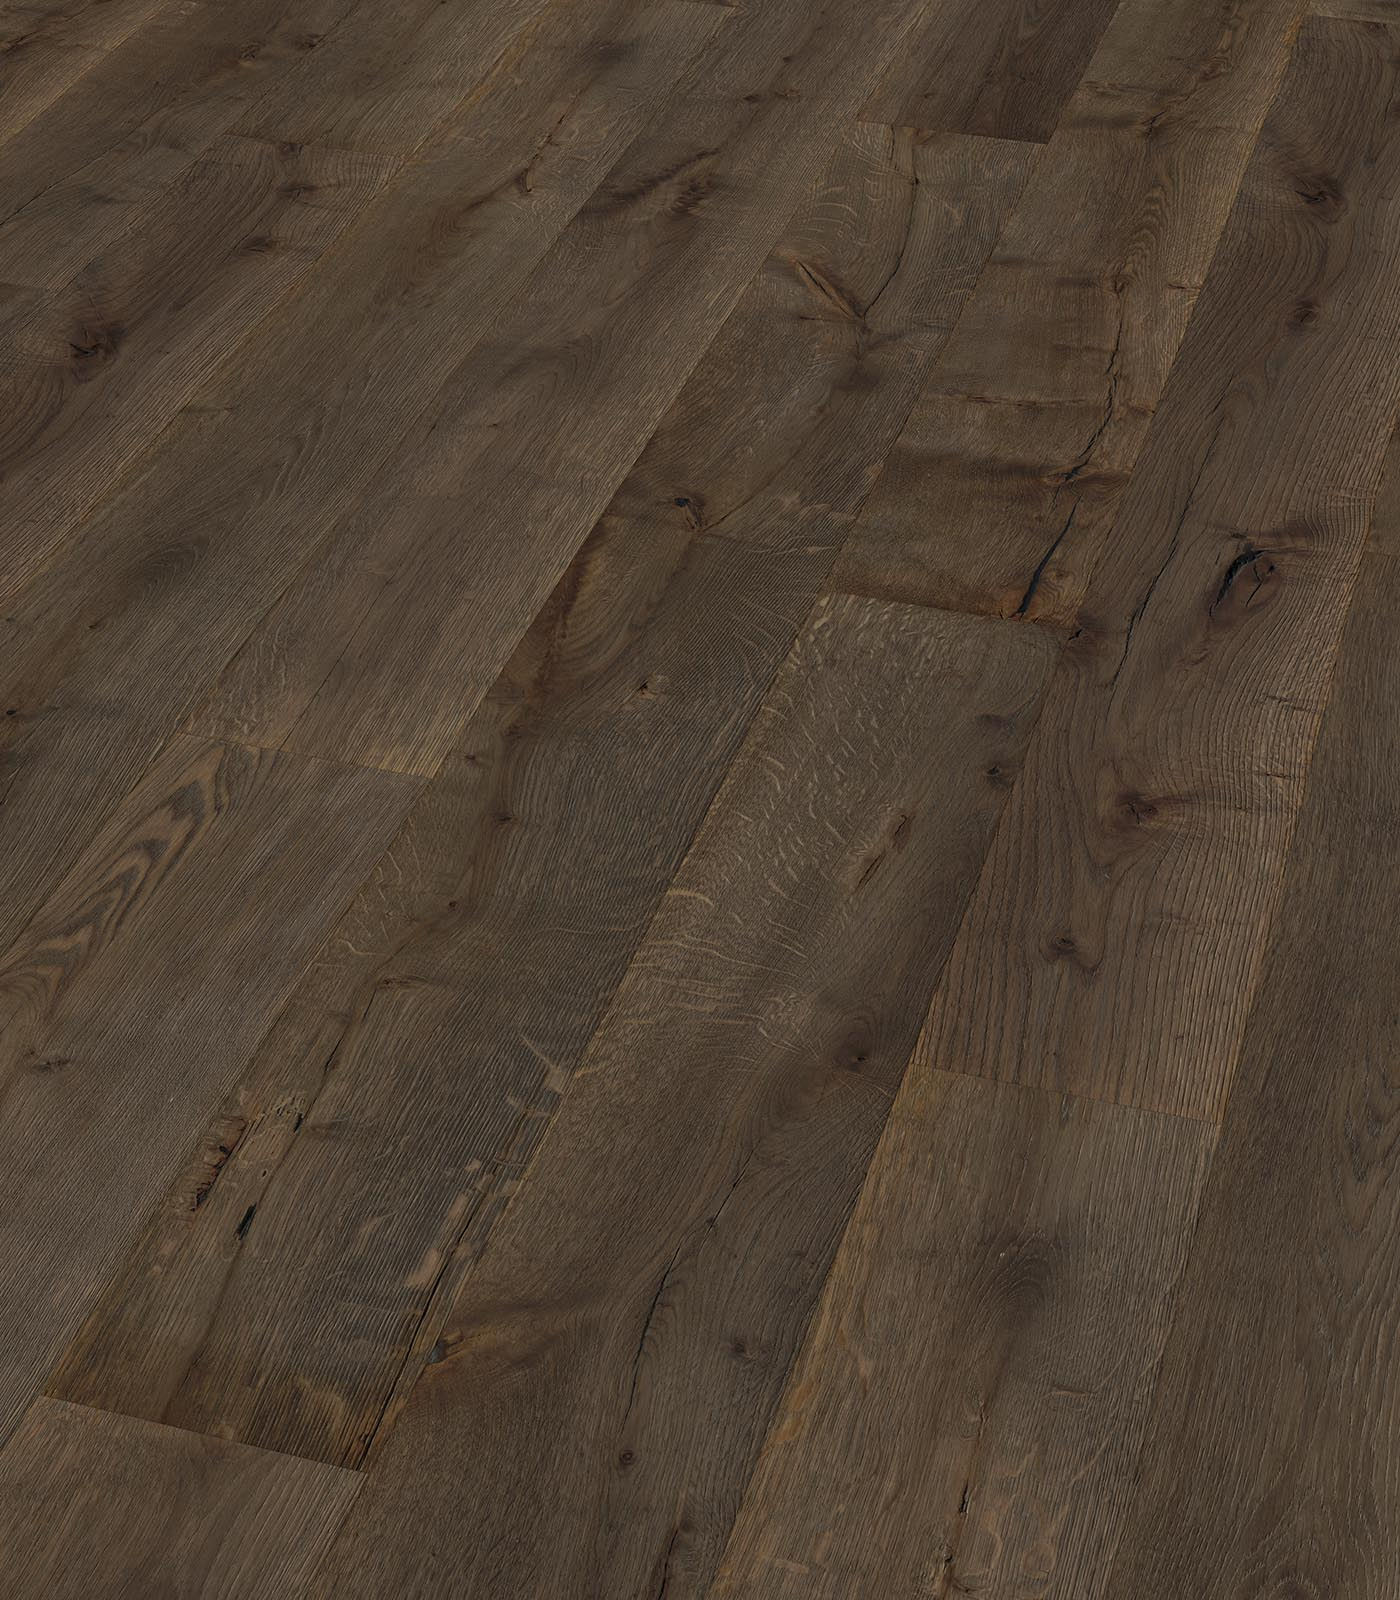 Christchurch-European Oak Floors-Variante Collection-angle